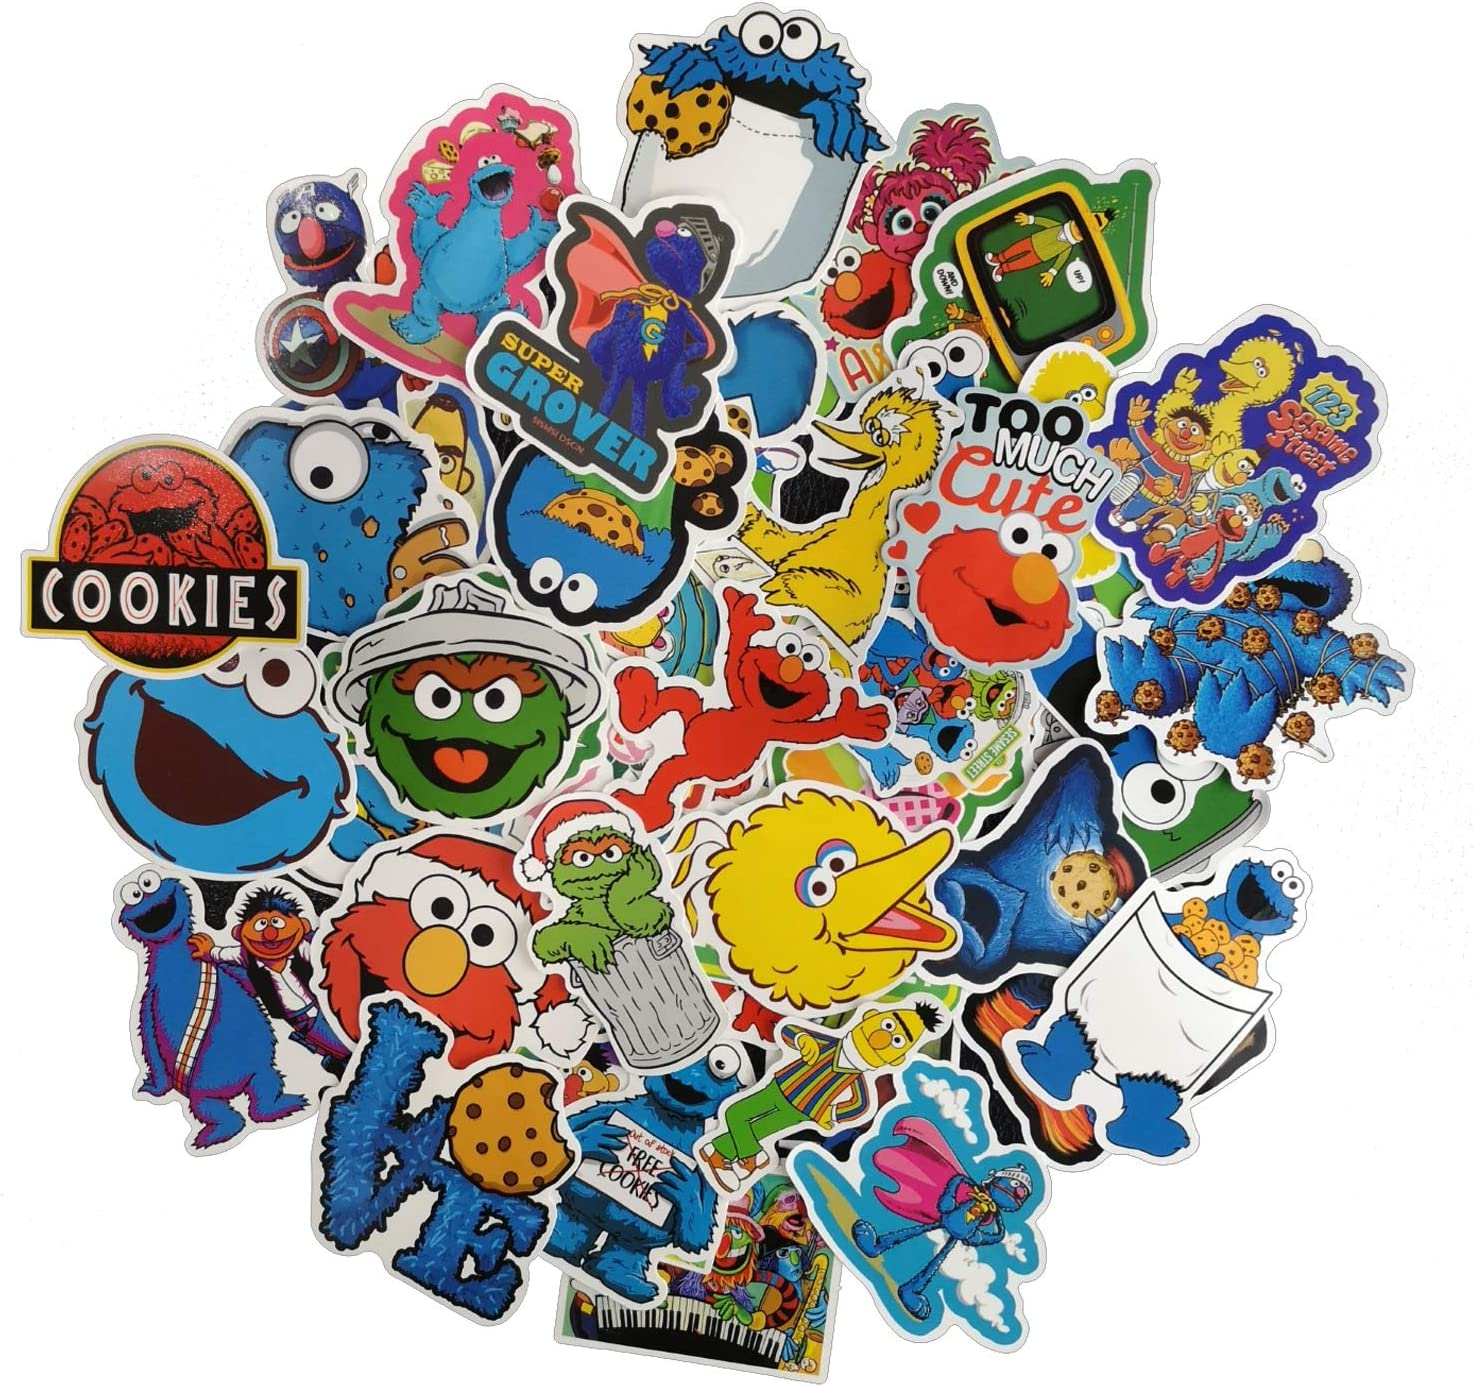 Classic Cartoon TV Show Sesame Street Prints, Cute and Funny Stickers, Size 1.5 to 3.5 Inch with Vinyl Decals - Assortment of Laptops Sticker Decals, UV Protected & Waterproof - 50 pcs